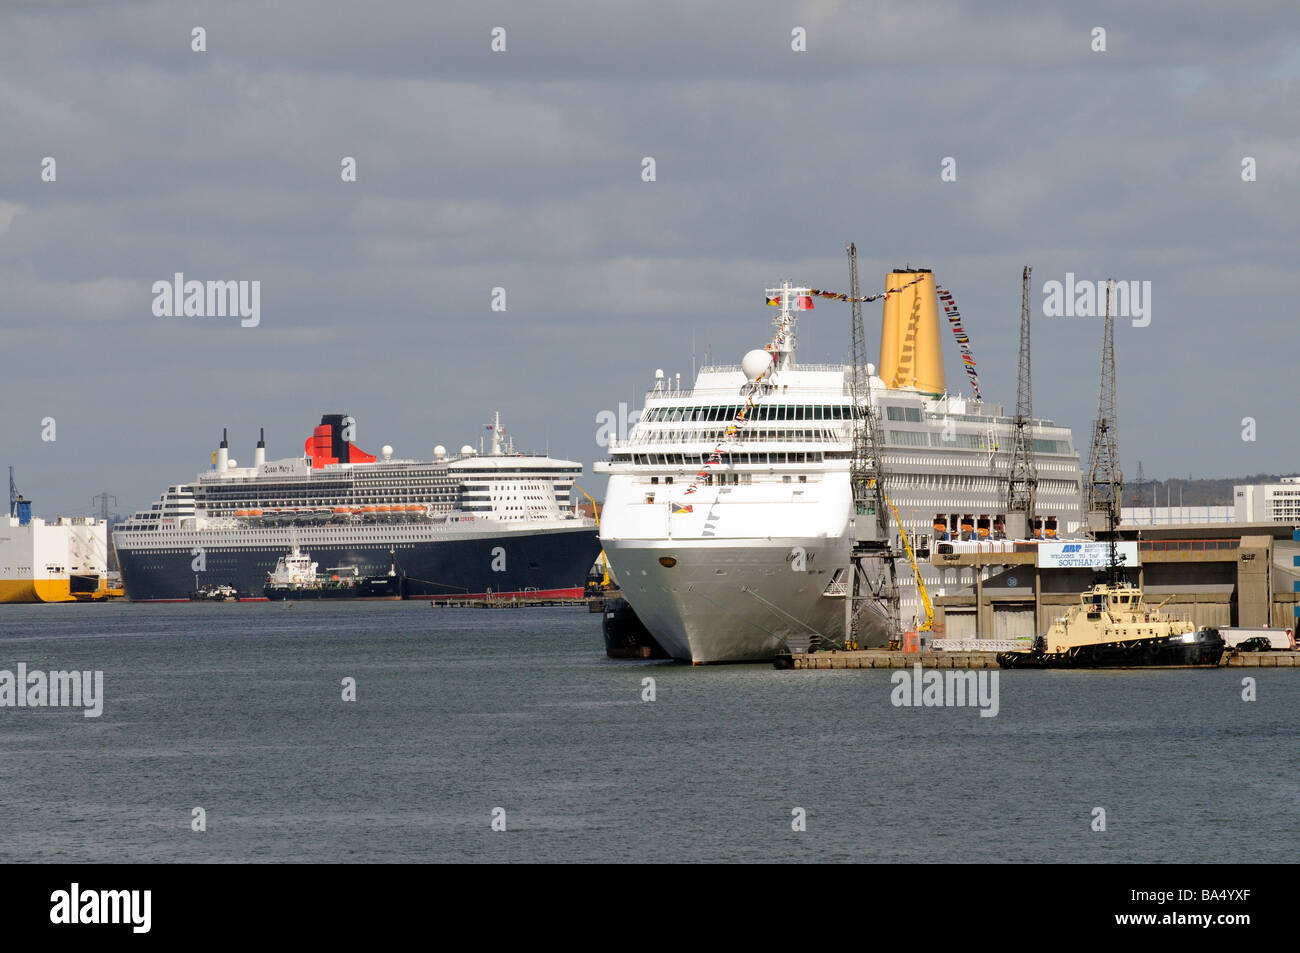 Southampton Docks England UK the Queen Mary 2 and the Oriana cruise ships berthed alongside - Stock Image